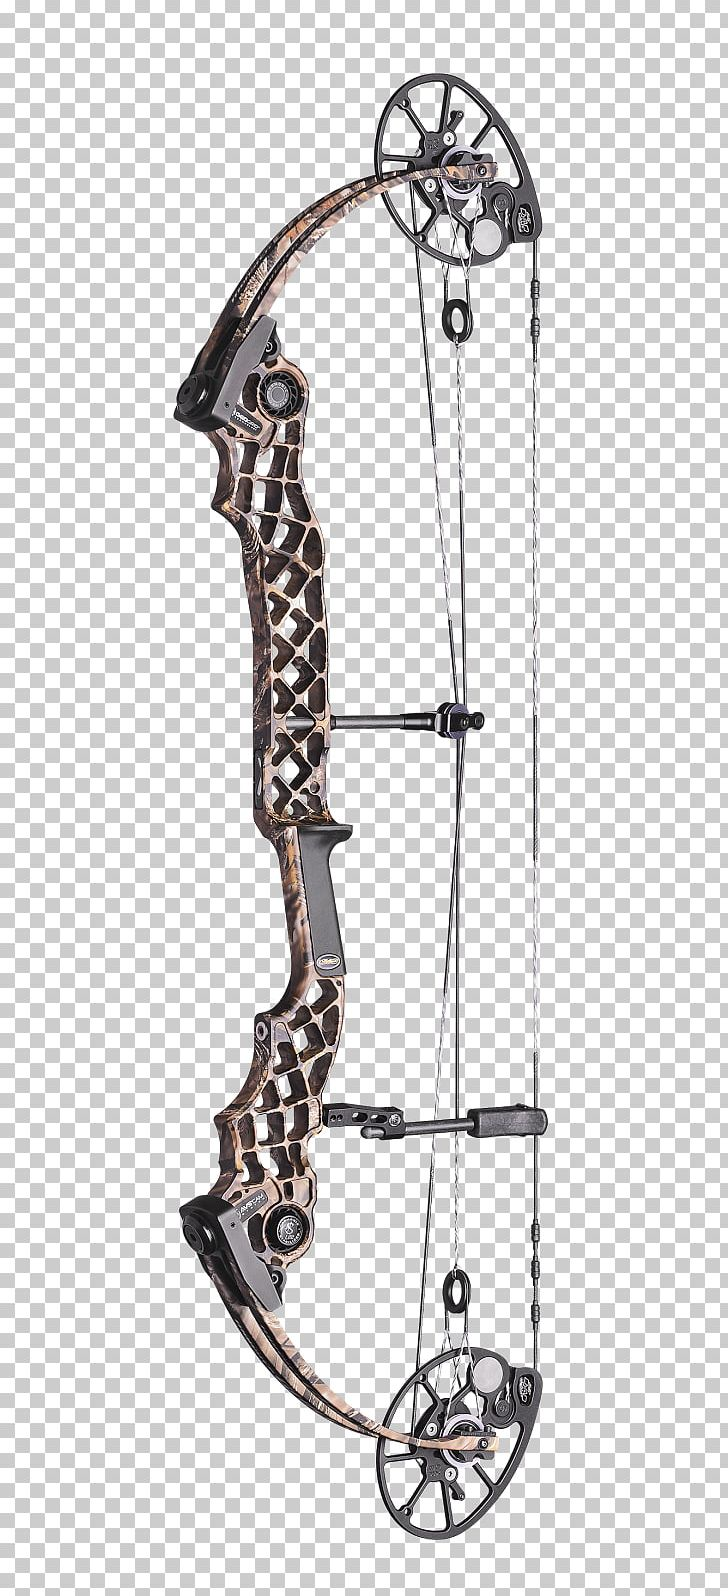 Compound Bows Bowhunting Archery Bow And Arrow PNG, Clipart, Archery, Arrow, Bit, Bow, Bow And Arrow Free PNG Download